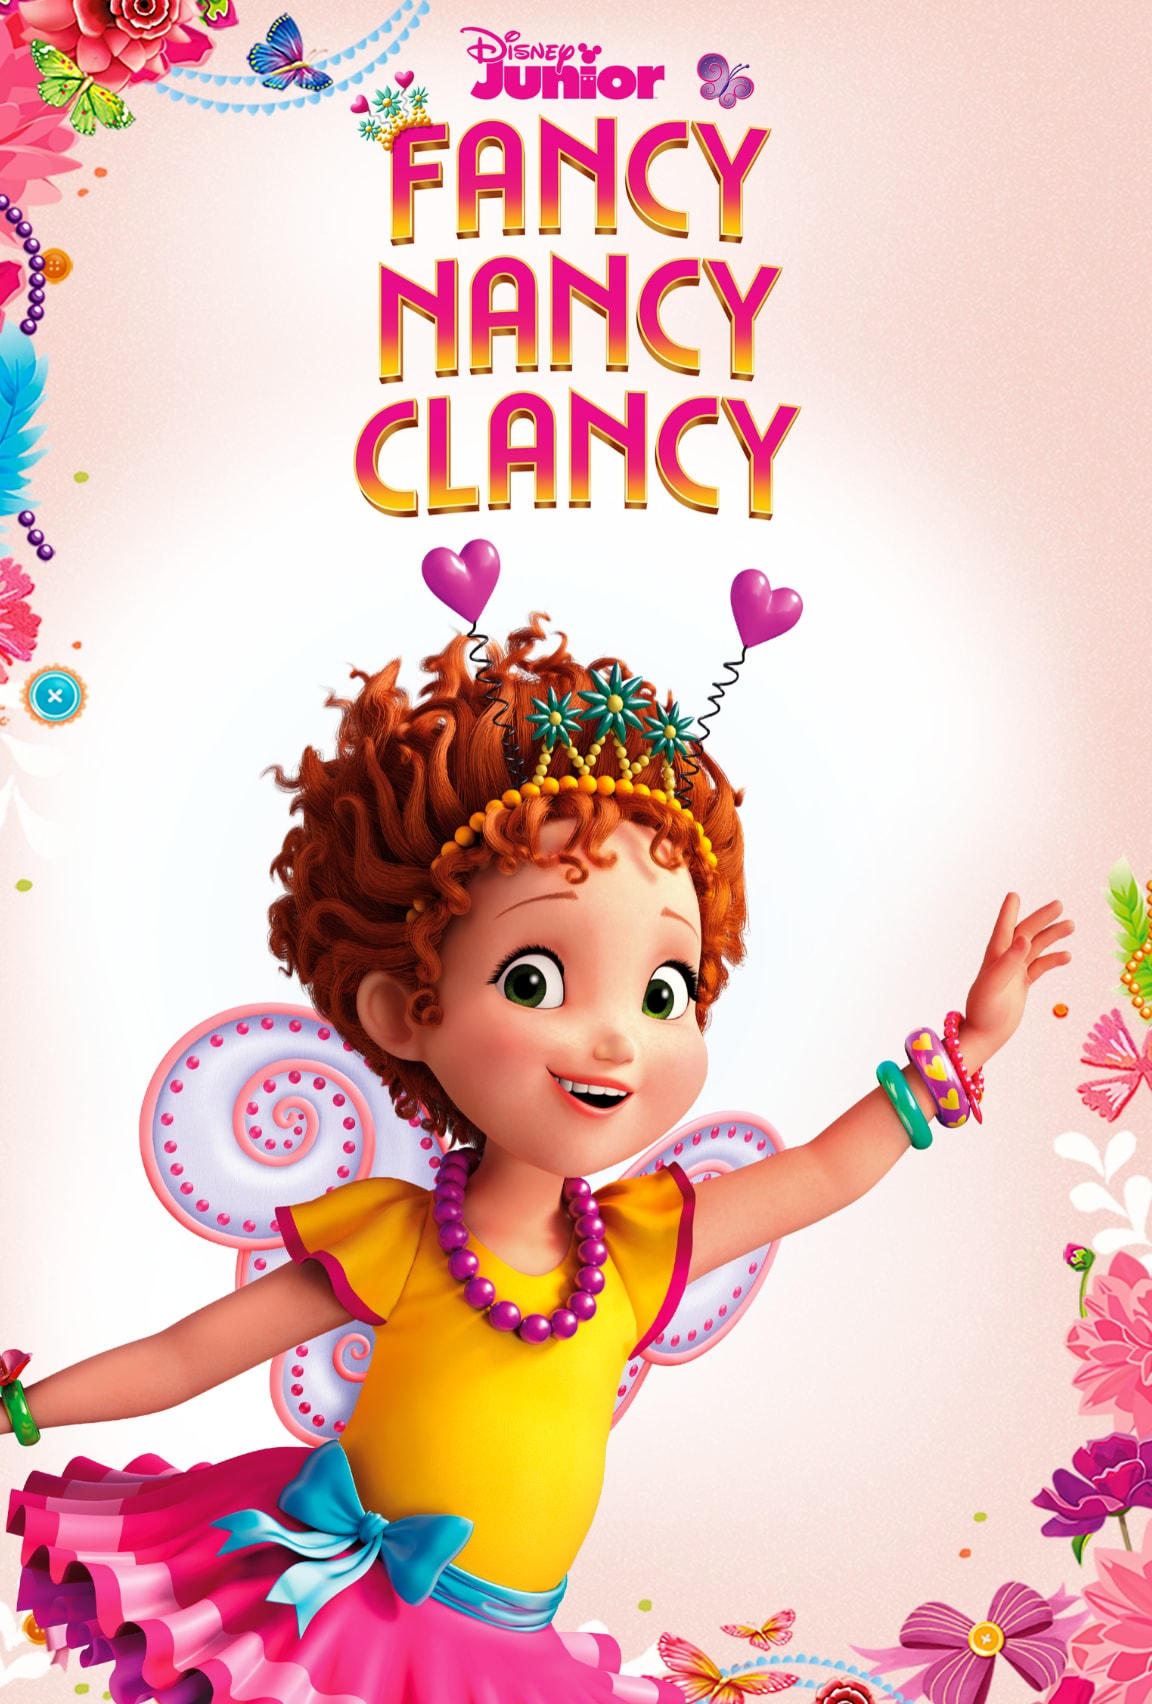 Fancy Nancy Clancy (2018)